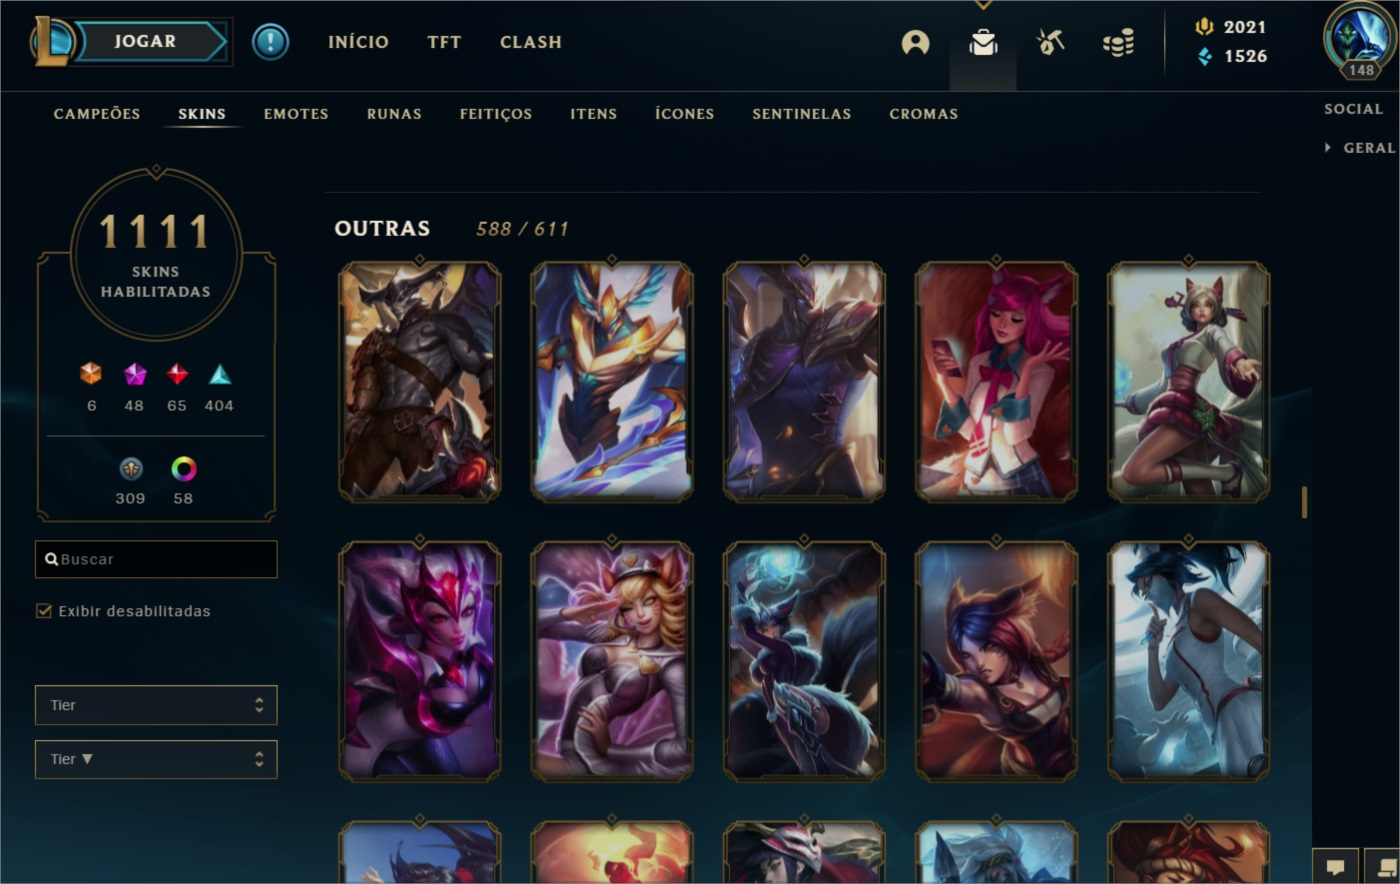 Conta league of legends lvl 148 com 1.111 skins